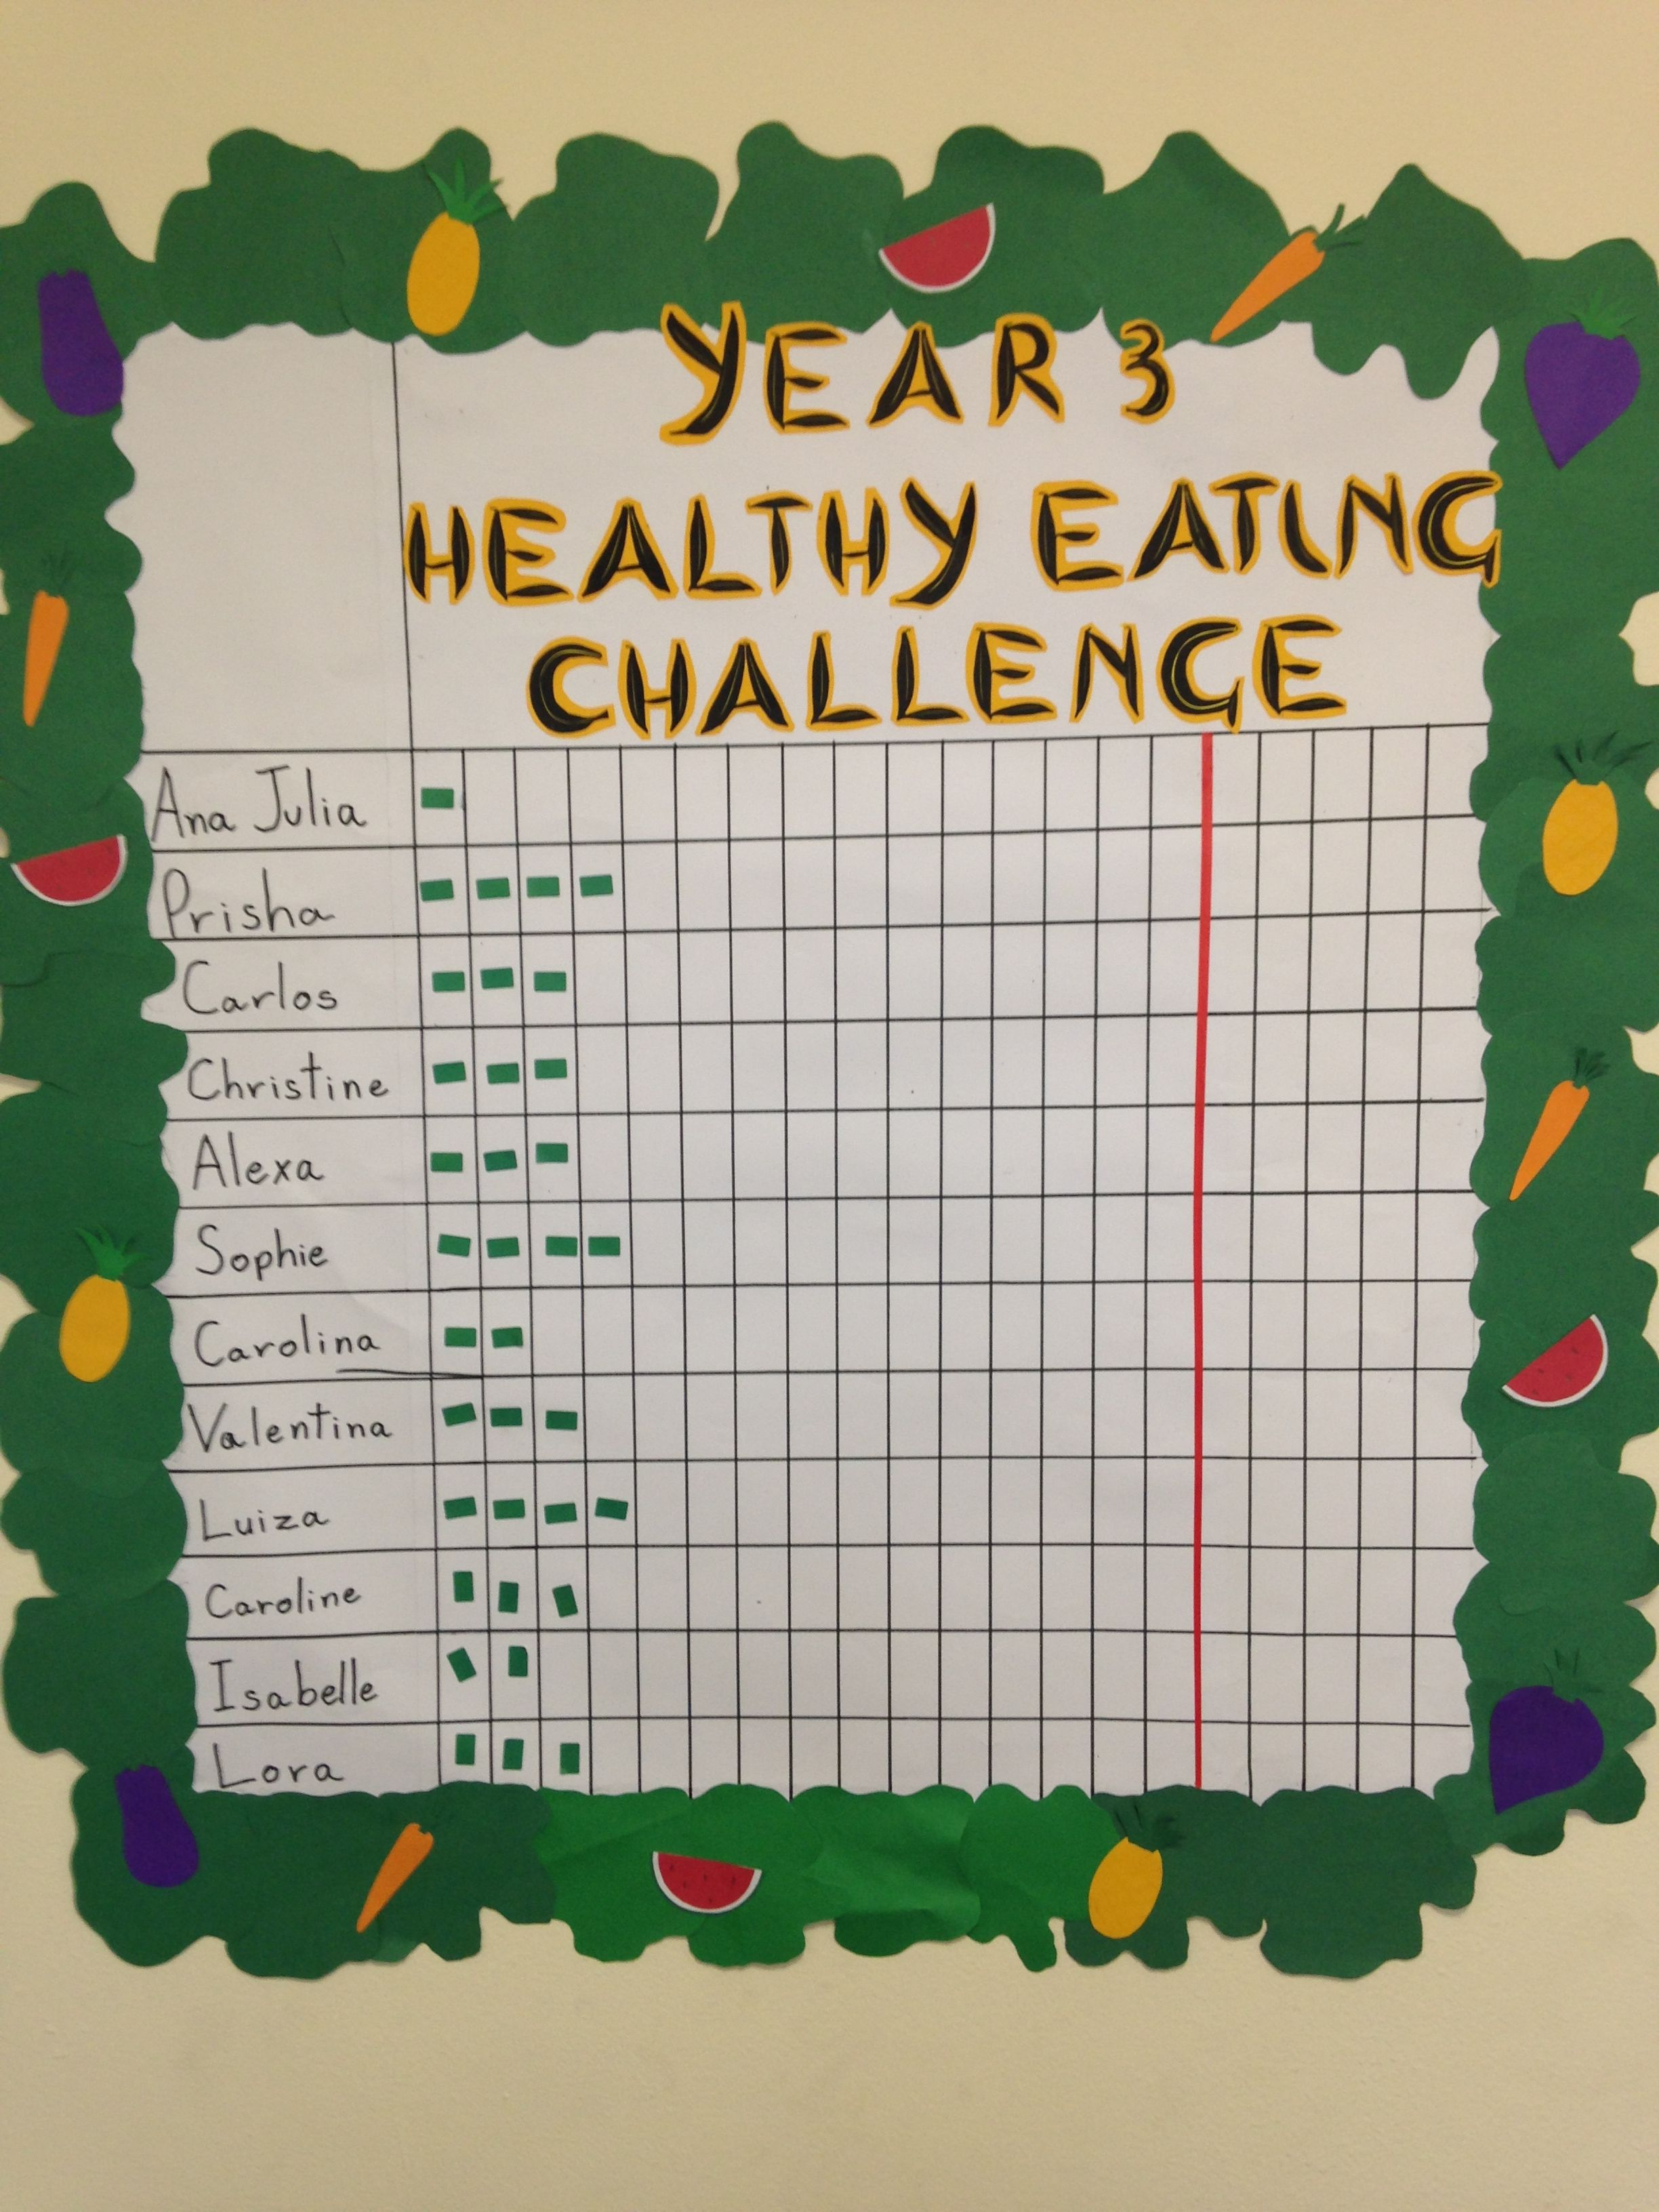 Year 3 Healthy Eating Challenge